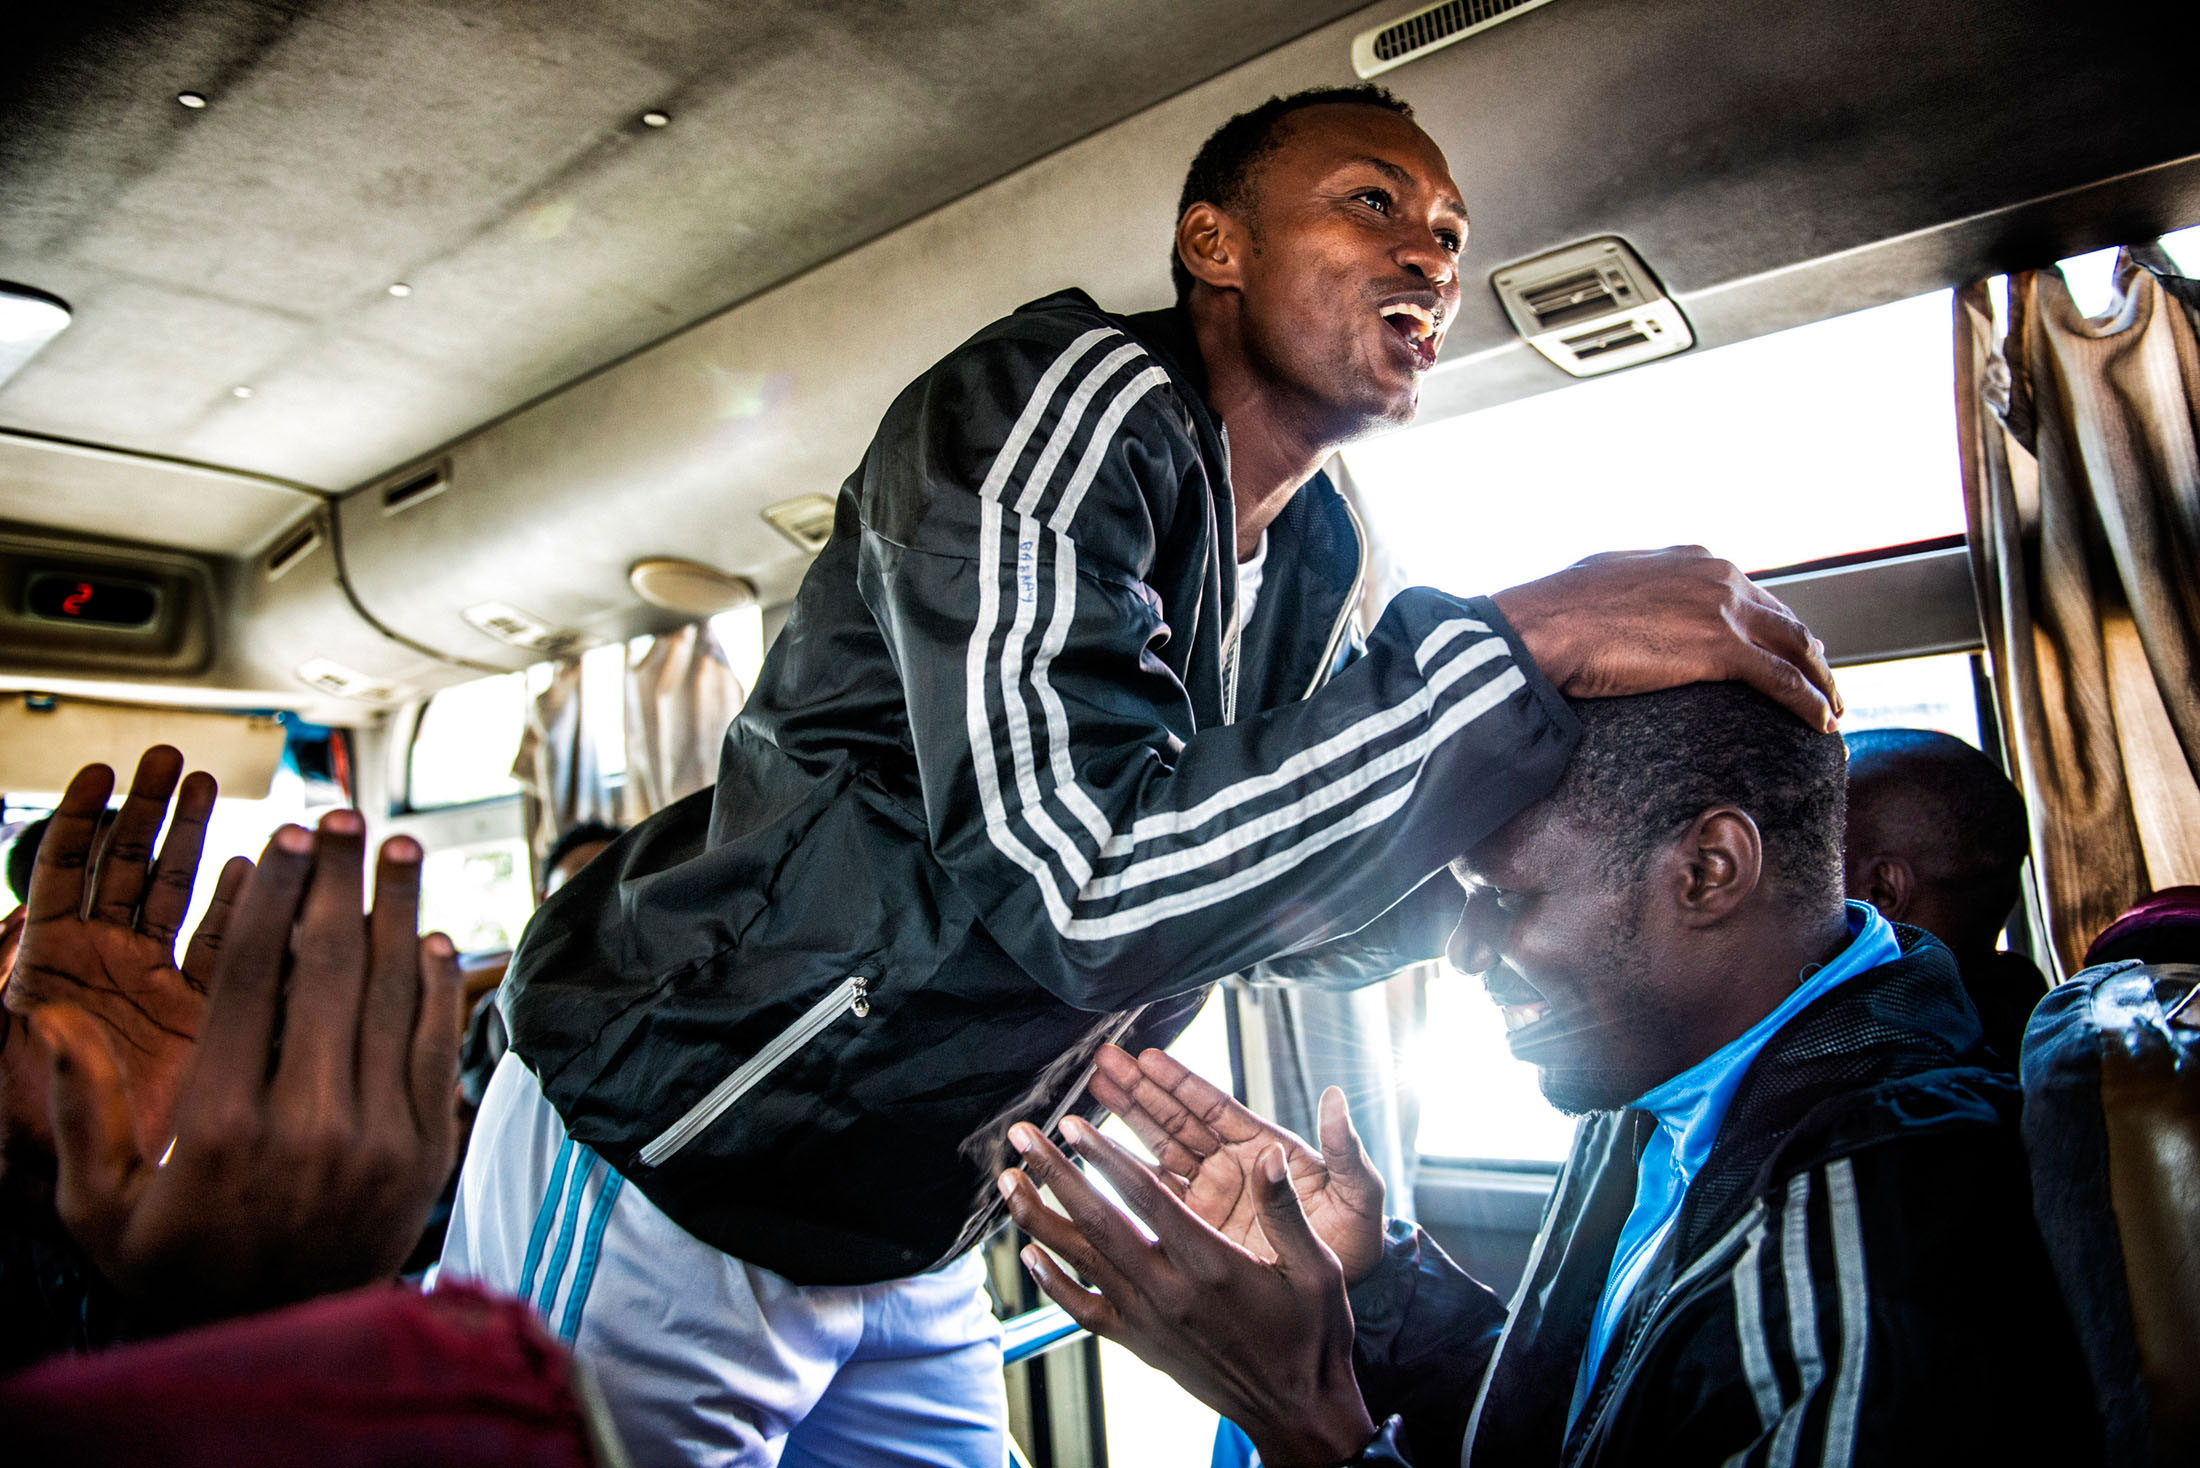 Due to lack of sponsors, there's not much money in Somali football, most Somali players receive low salaries and need to have a job next to their professional football career to sustain their families.[Jeroen van Loon/Al Jazeera]